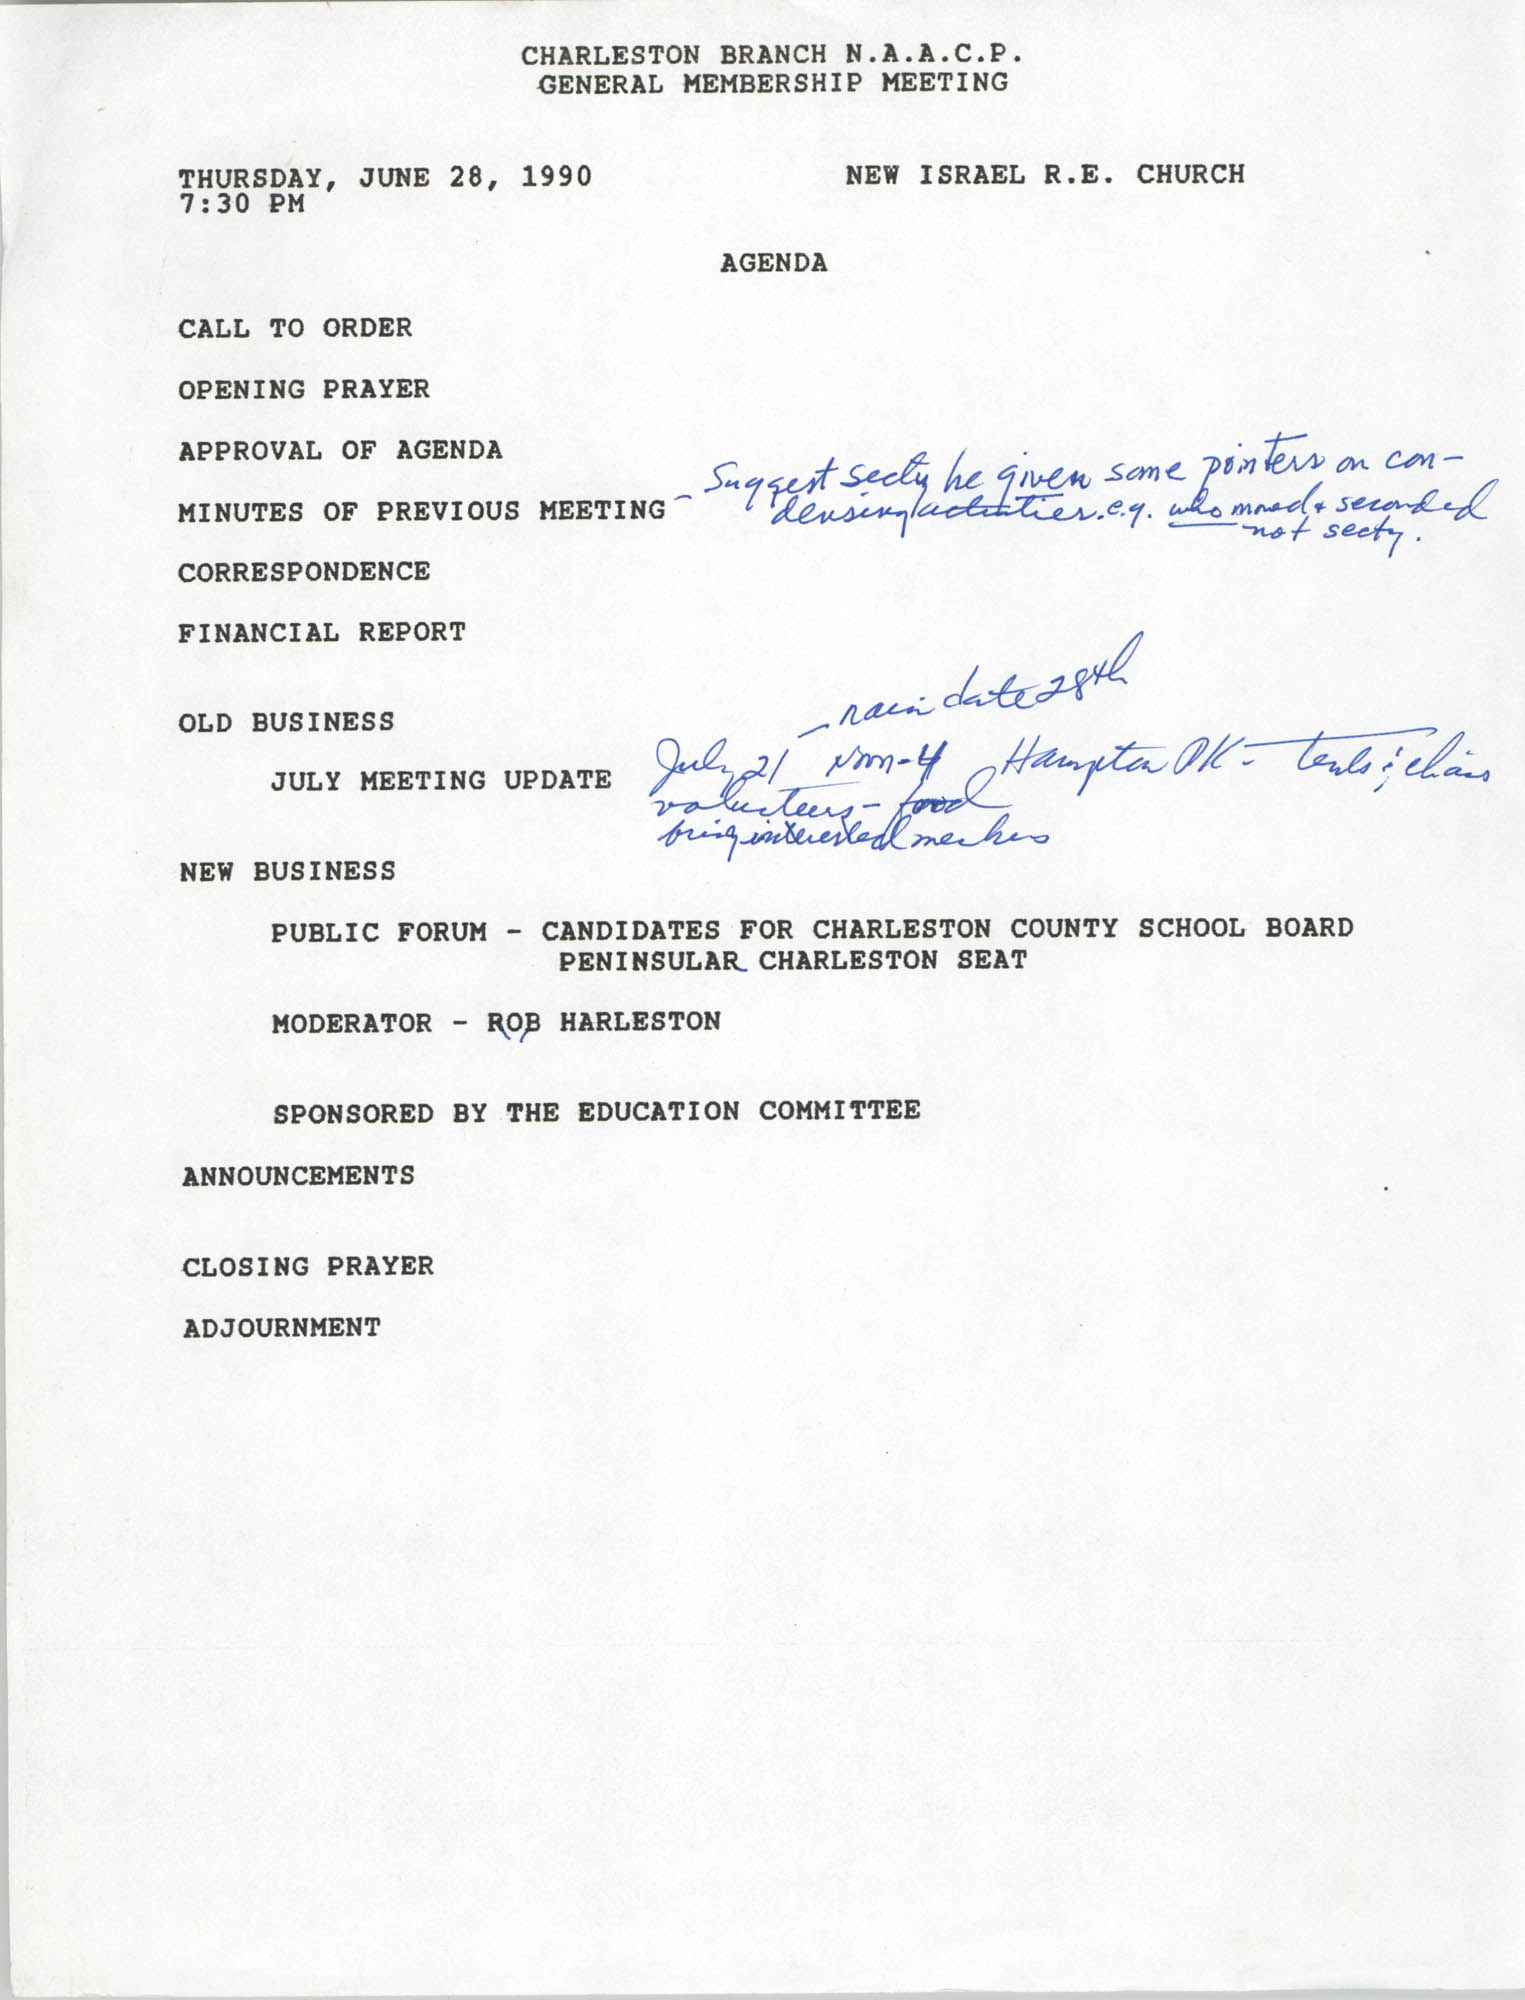 Agenda, Charleston Branch of the NAACP, General Membership Meeting, June 28, 1990